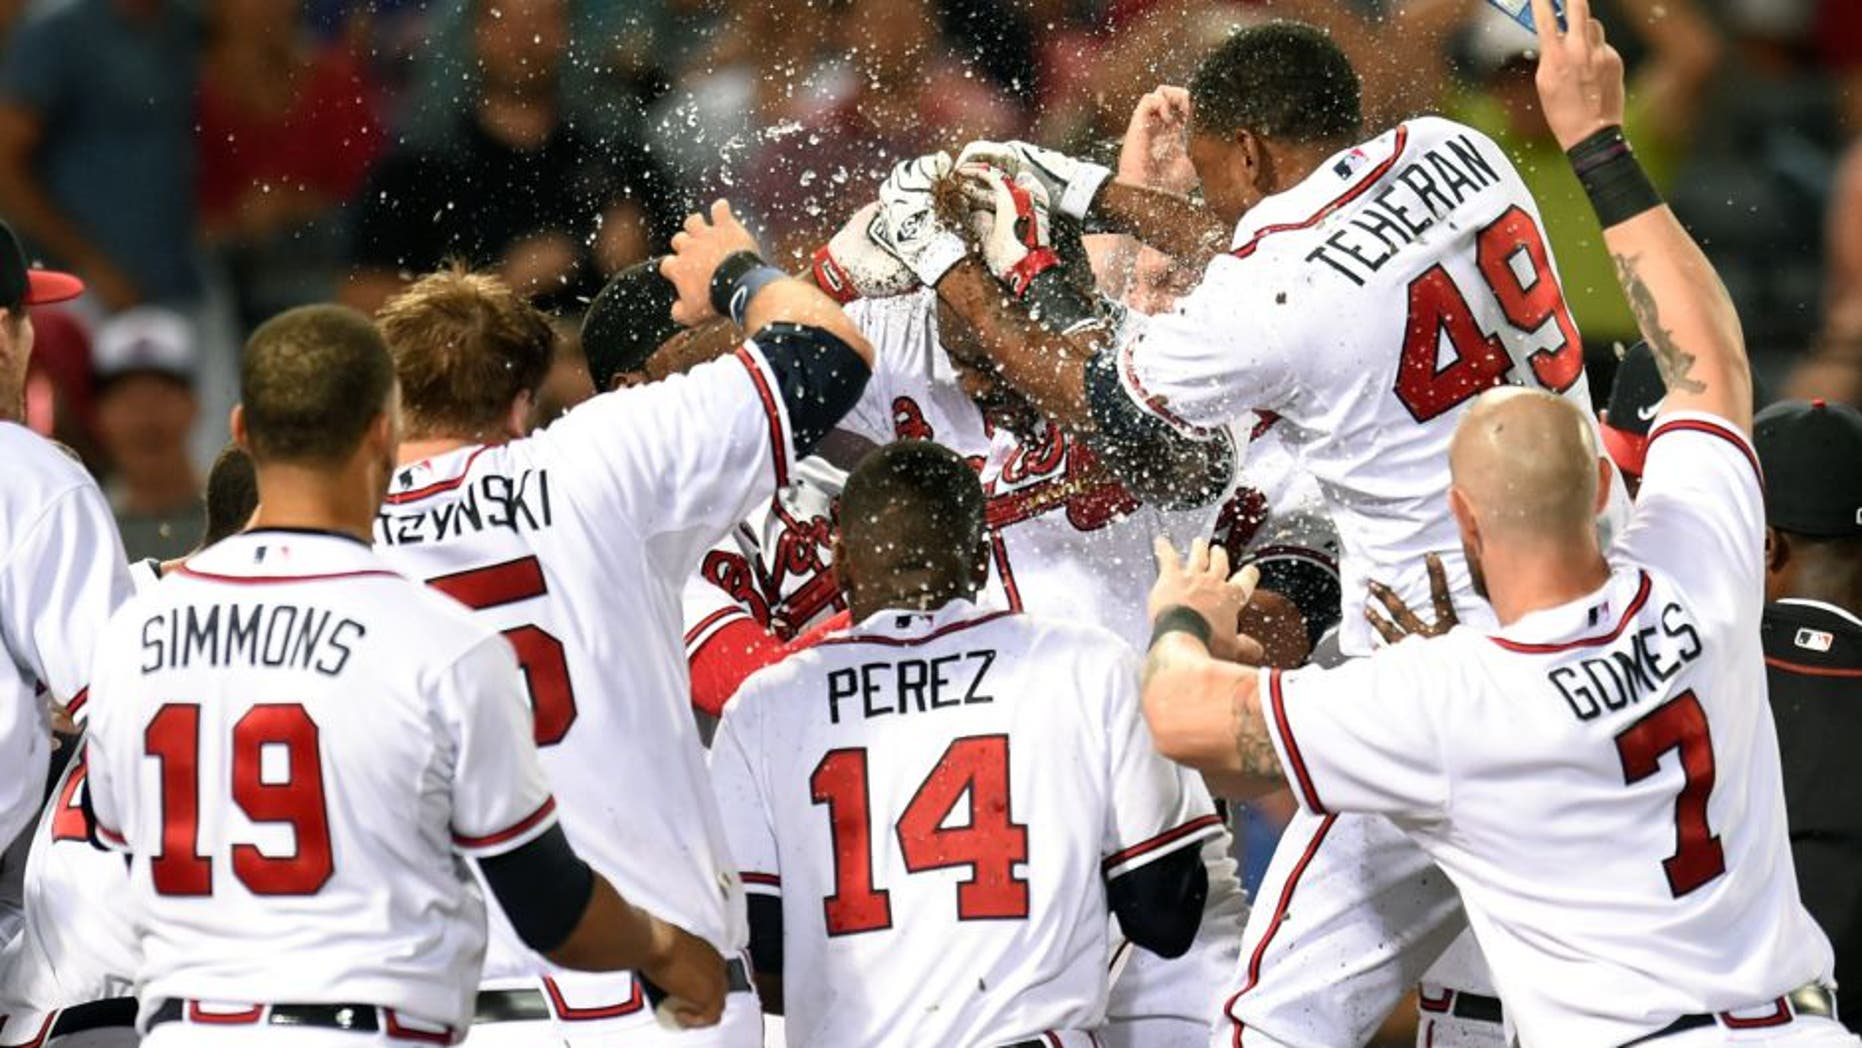 Aug 3, 2015; Atlanta, GA, USA; Atlanta Braves third baseman Adonis Garcia (center) is mobbed by teammates after hitting a game winning two run home run against the San Francisco Giants during the twelfth inning at Turner Field. The Braves defeated the Giants 9-8 in 12 innings. Mandatory Credit: Dale Zanine-USA TODAY Sports